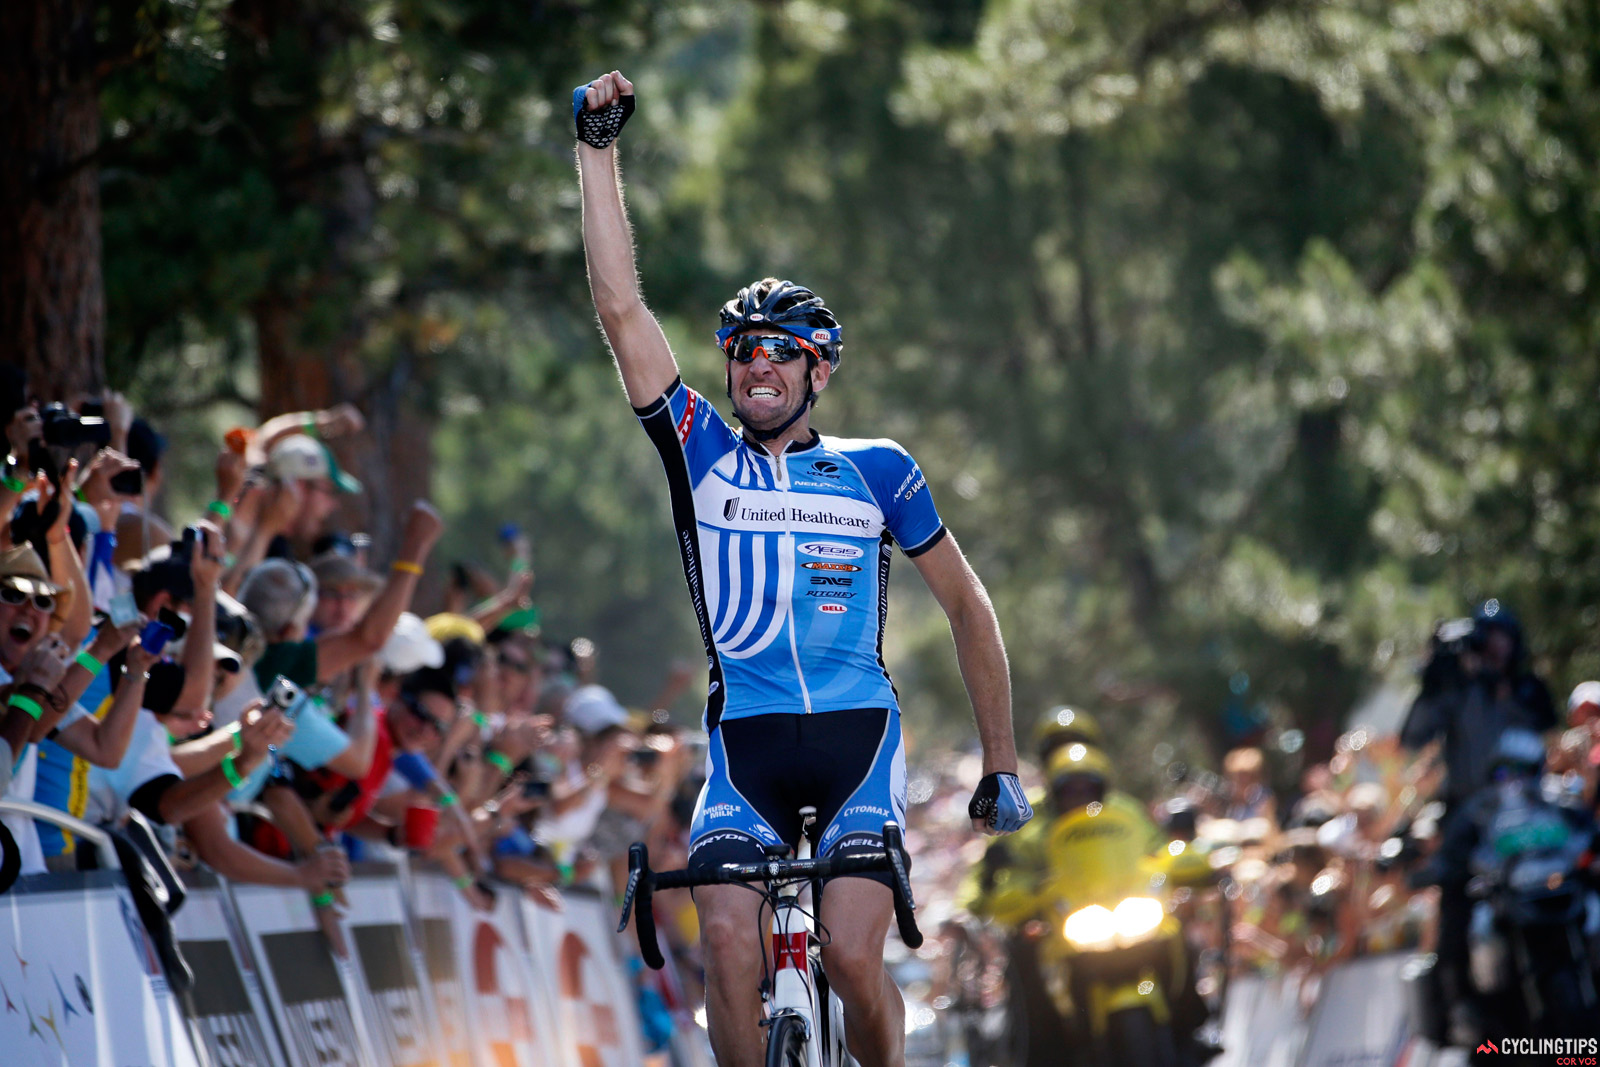 Sutherland won stage six of the 2012 USA Pro Challenge but then decided to work for others rather than continue in a leadership role.